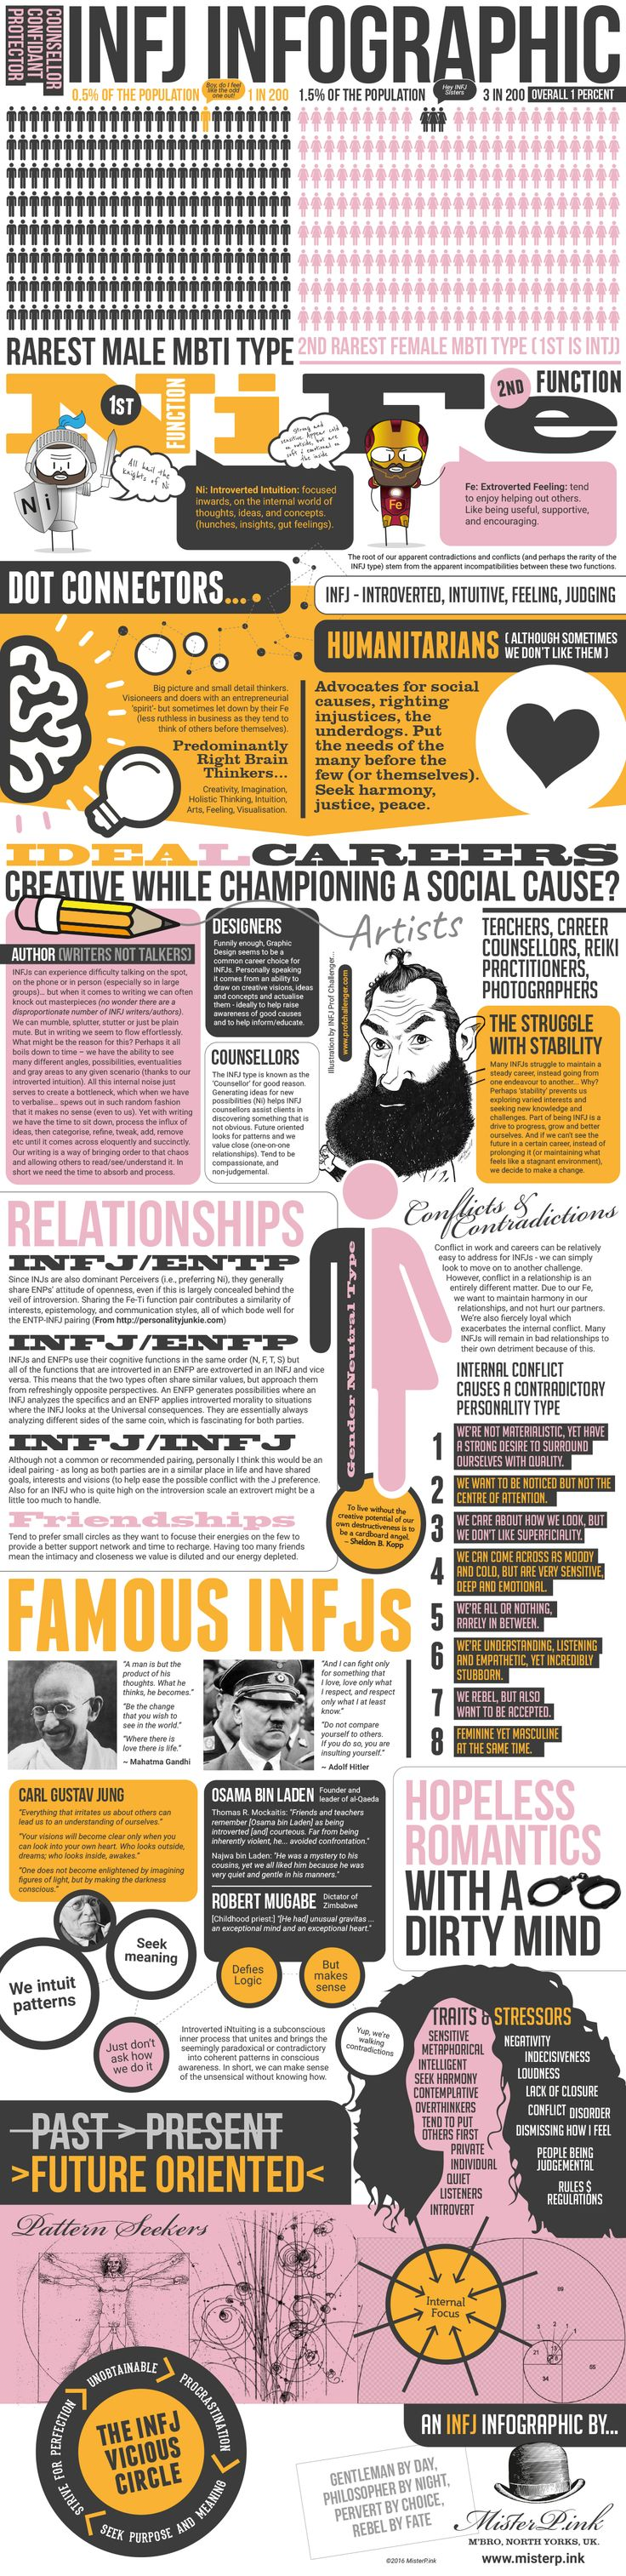 Infographic about my personality type: INFJ. I love the 8-point list of personality contradictions - completely accurate!